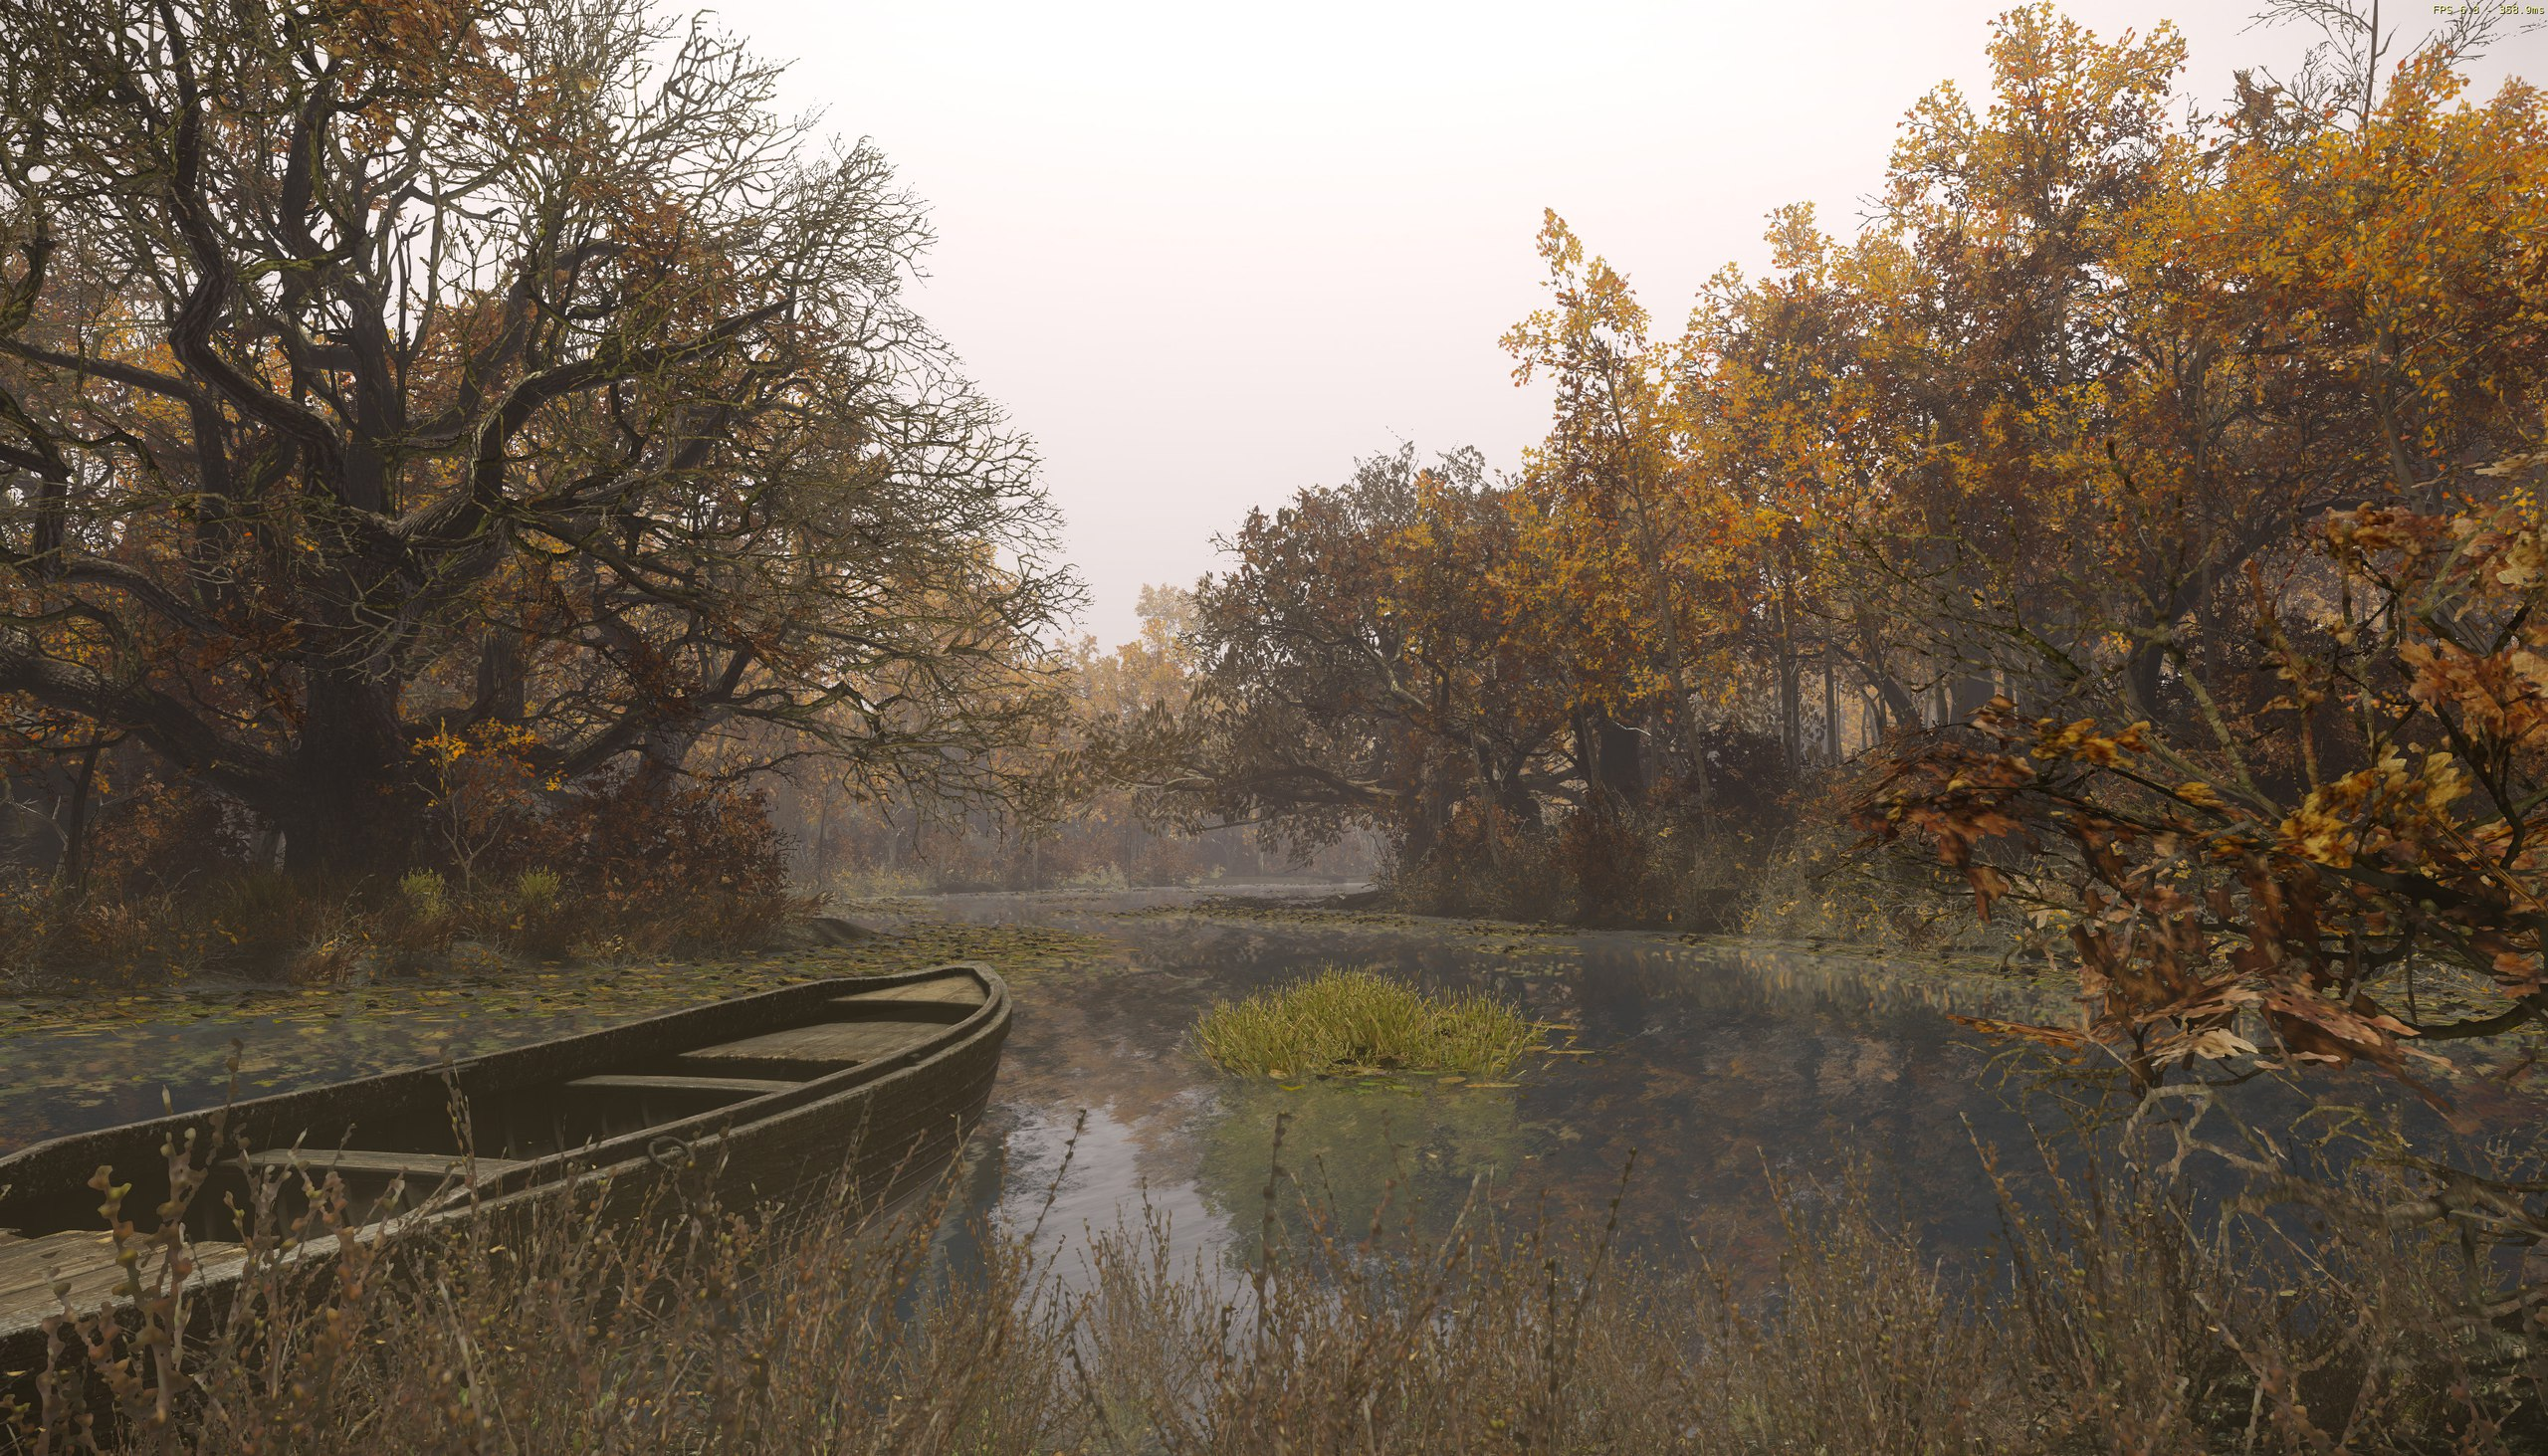 Creating a quick cryengine scene autumn river for Cryengine 3 architecture